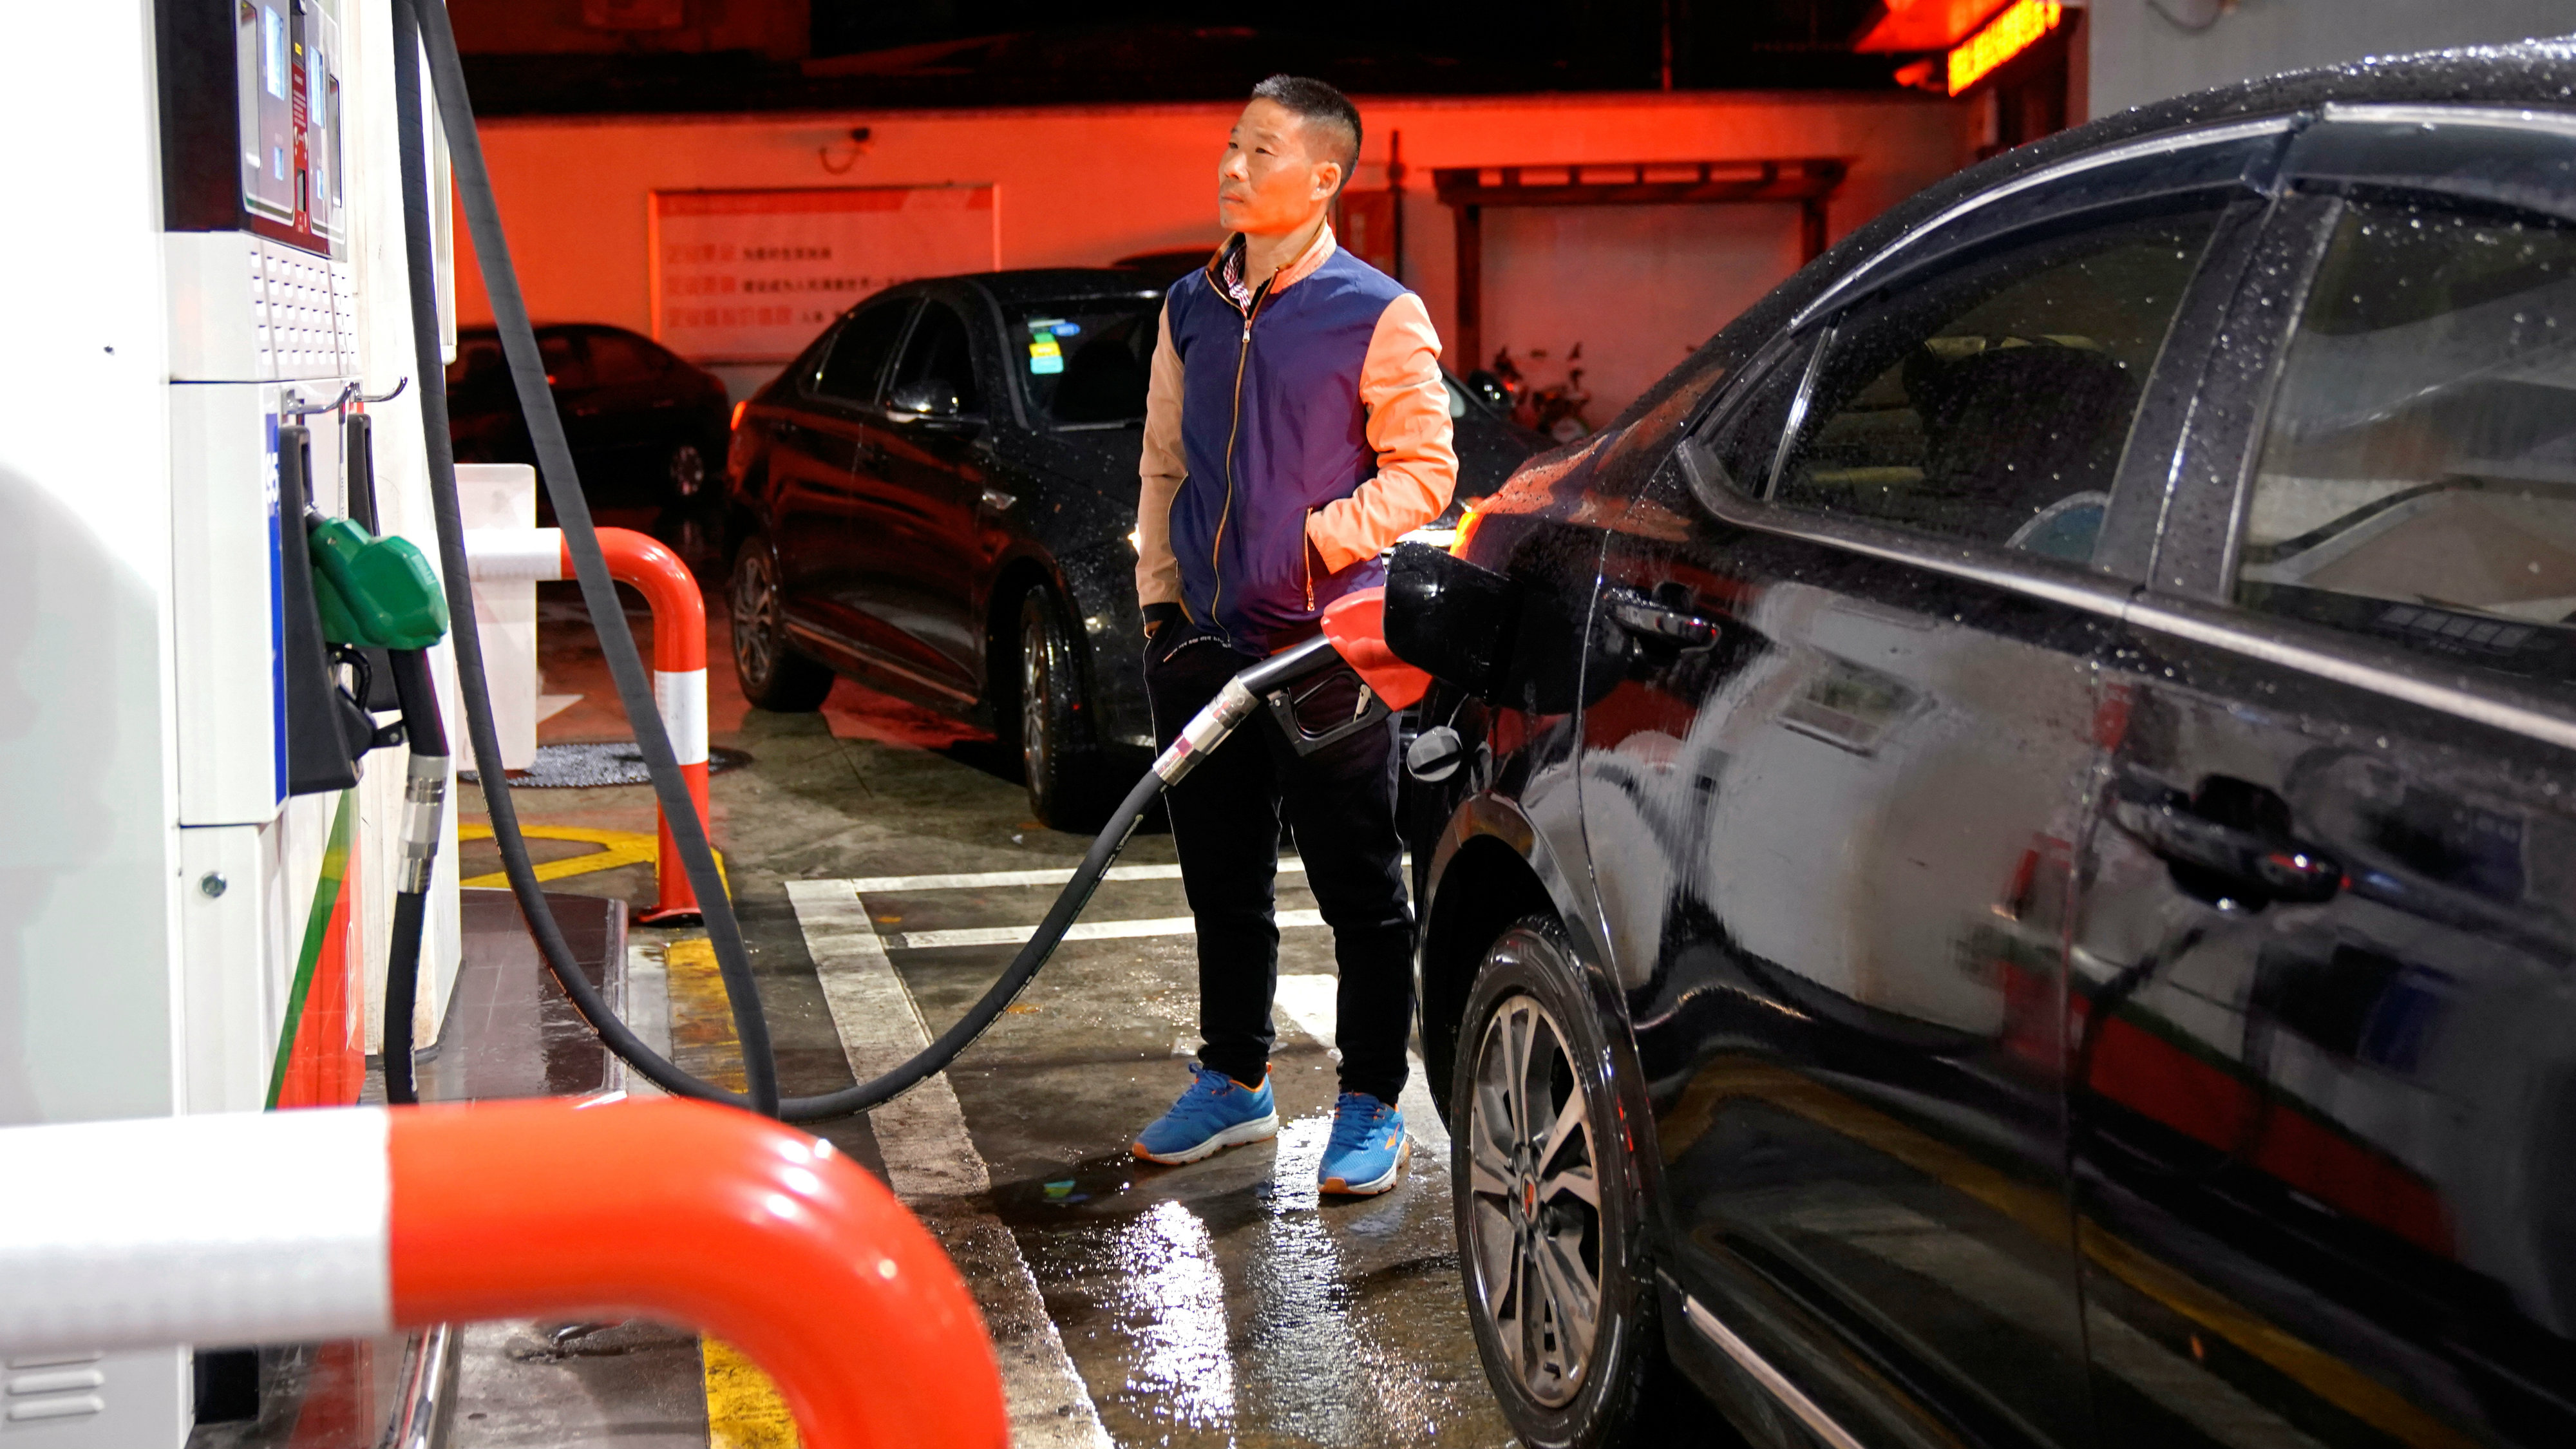 A driver looks at the price as he fills the tank of his car at a gas station in Shanghai, China November 17, 2017